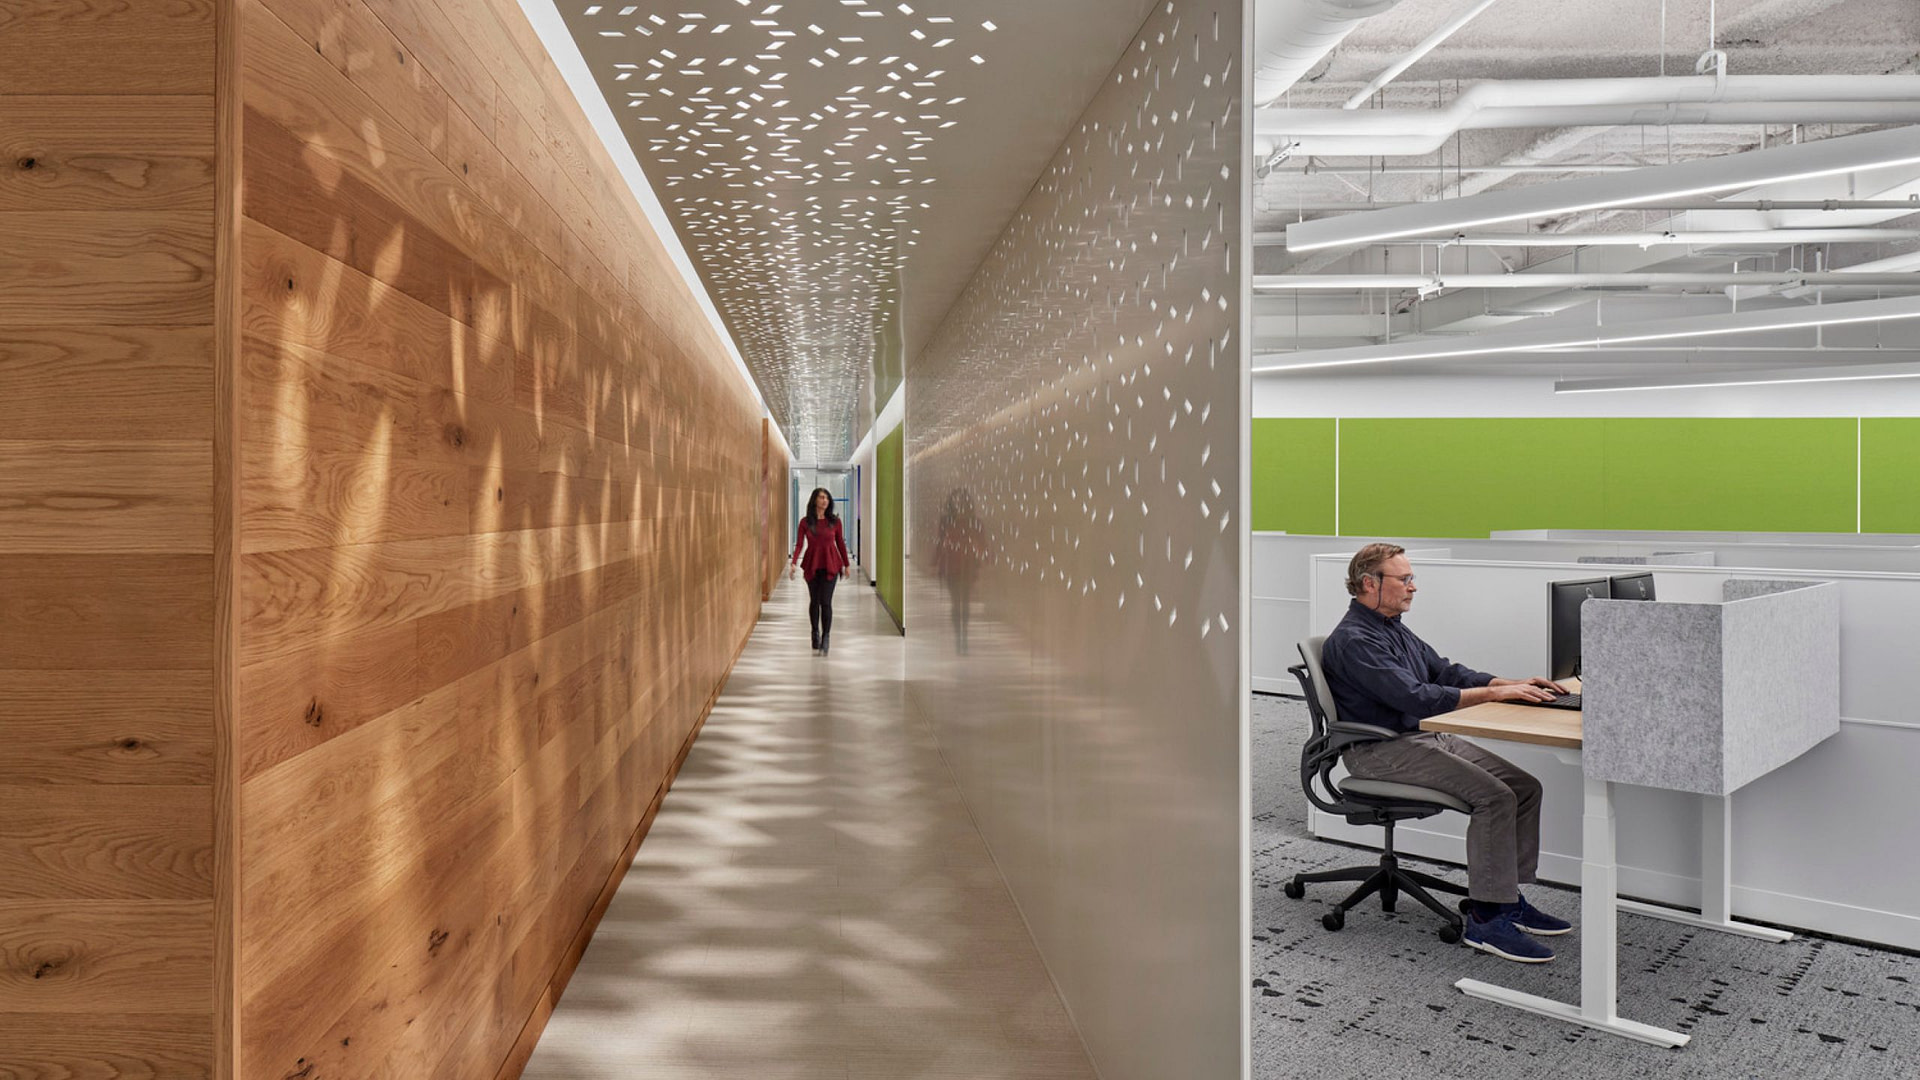 A hallway with perforated partitions at the Verisk Boston offices.